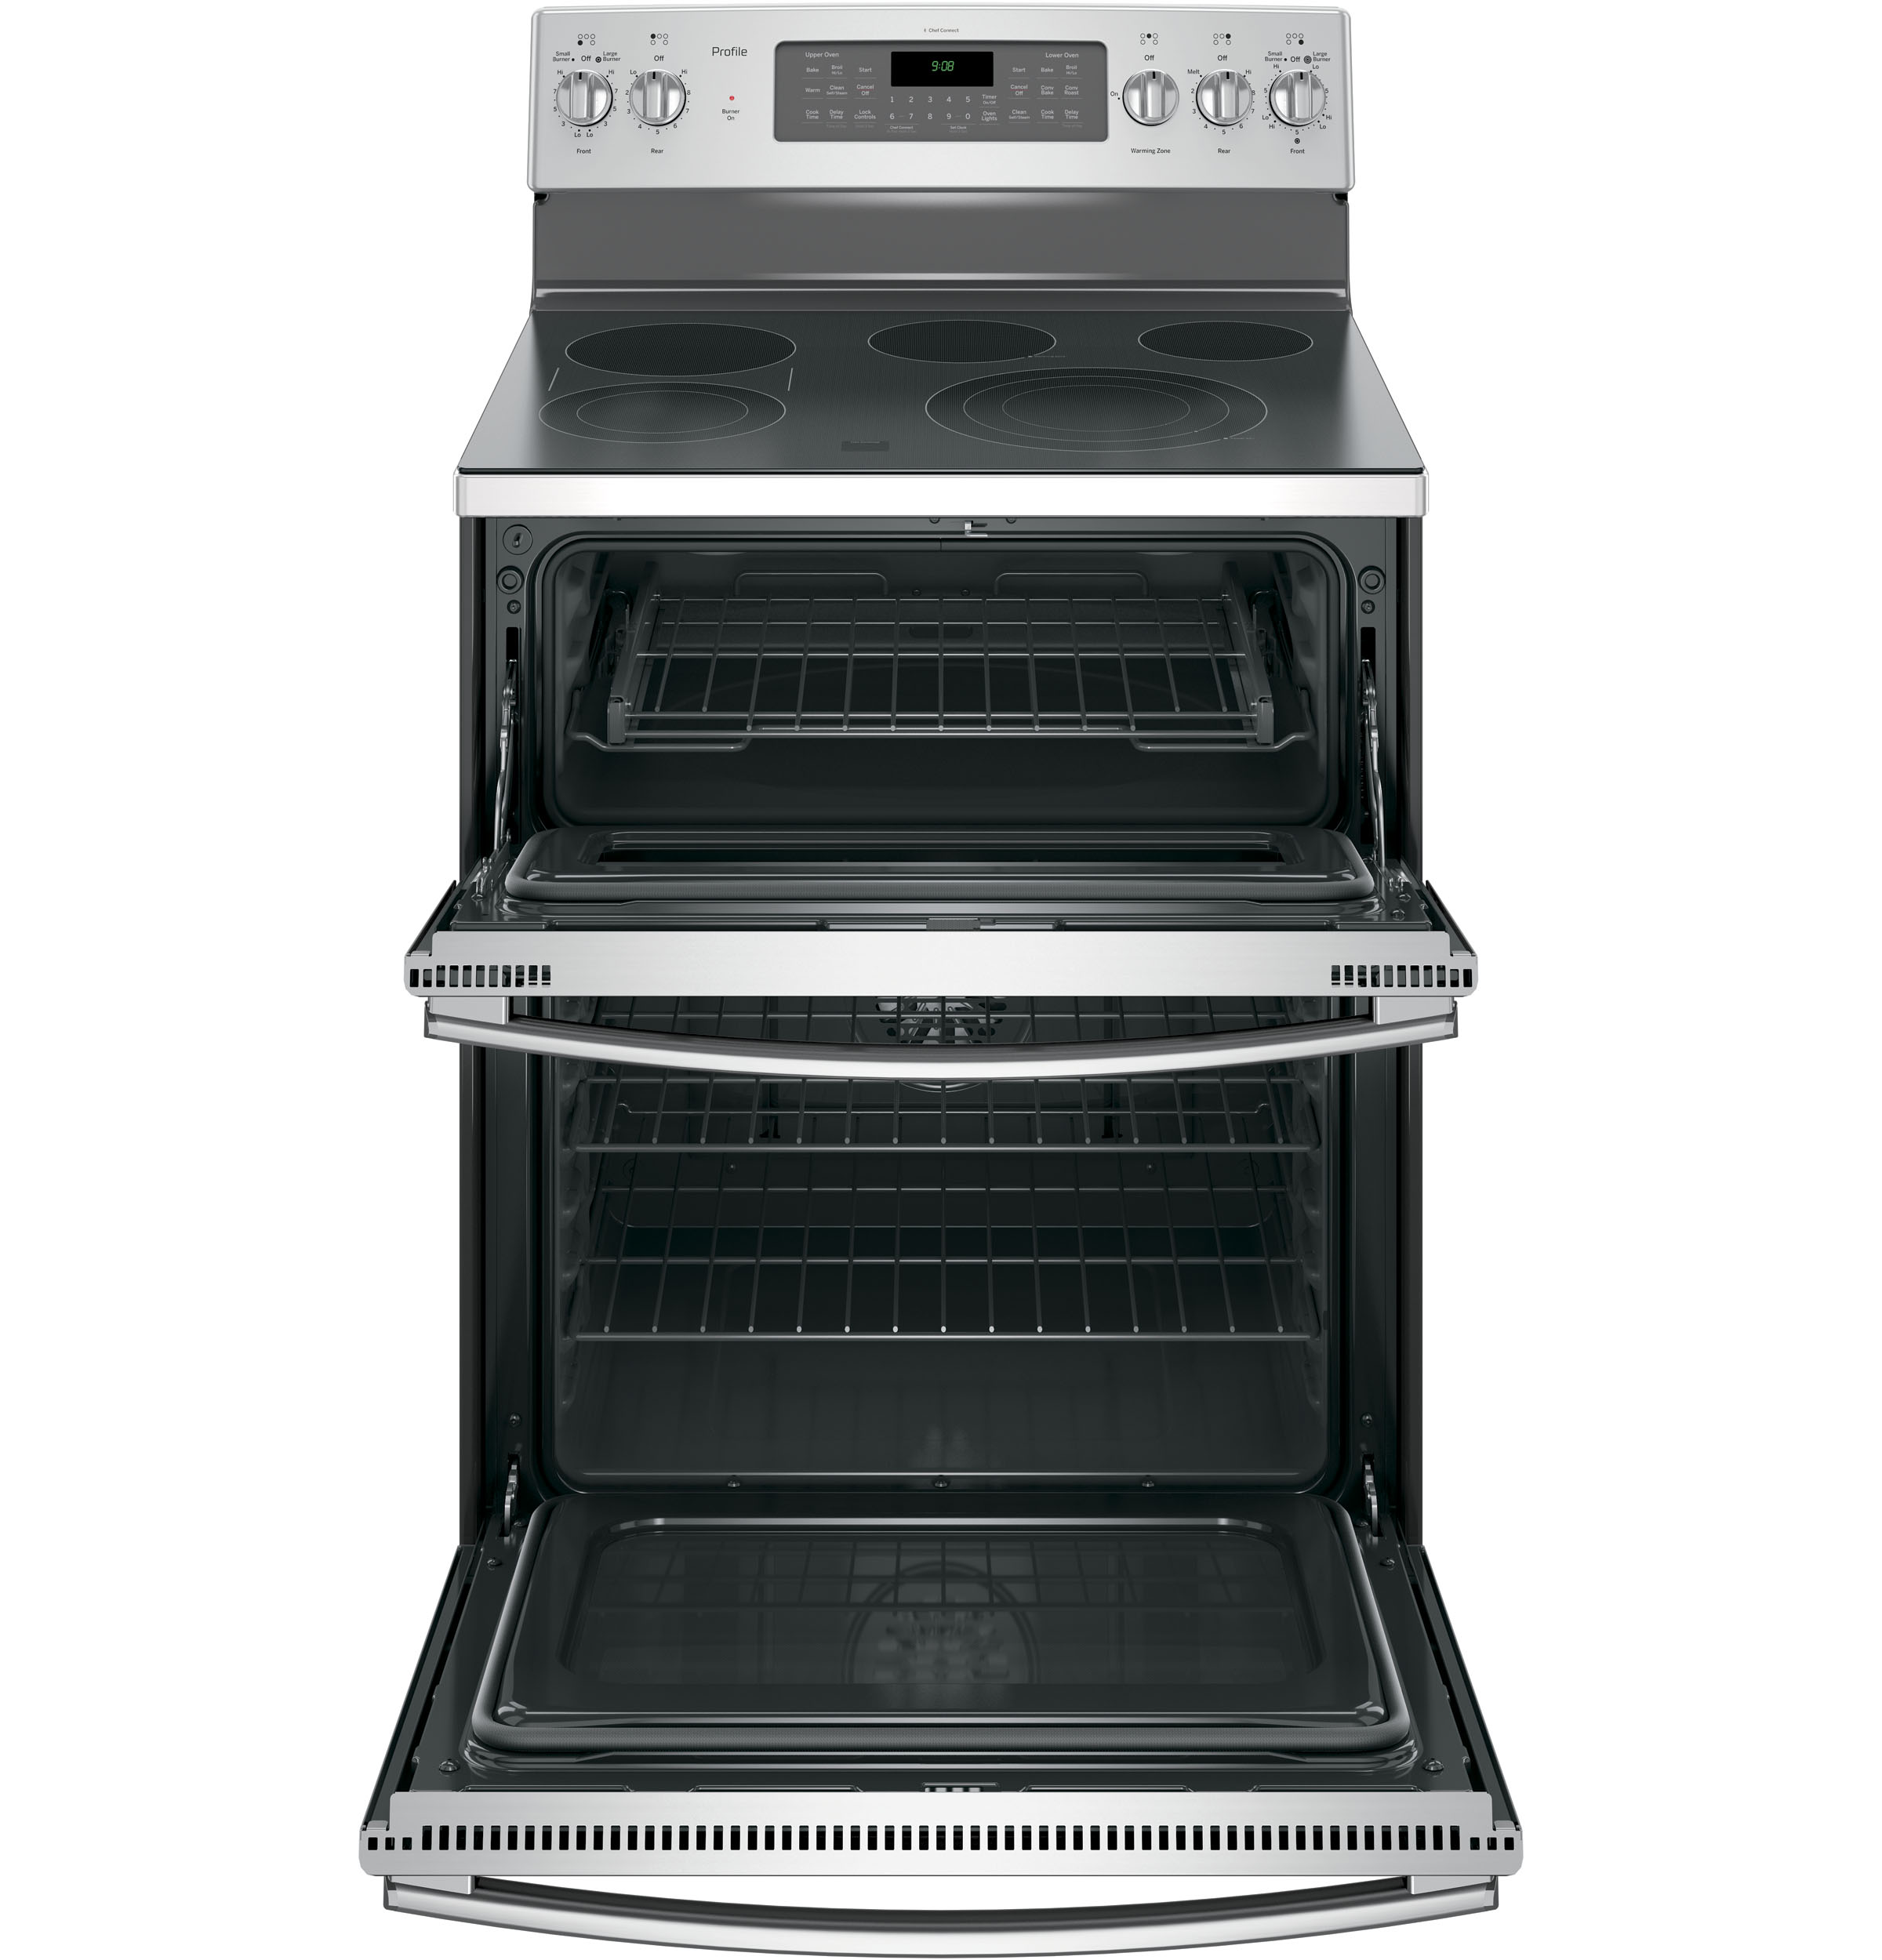 GE Profile PB980SJSS 6.6 cu. ft. Electric Range w/ Double Convection Oven - Stainless Steel